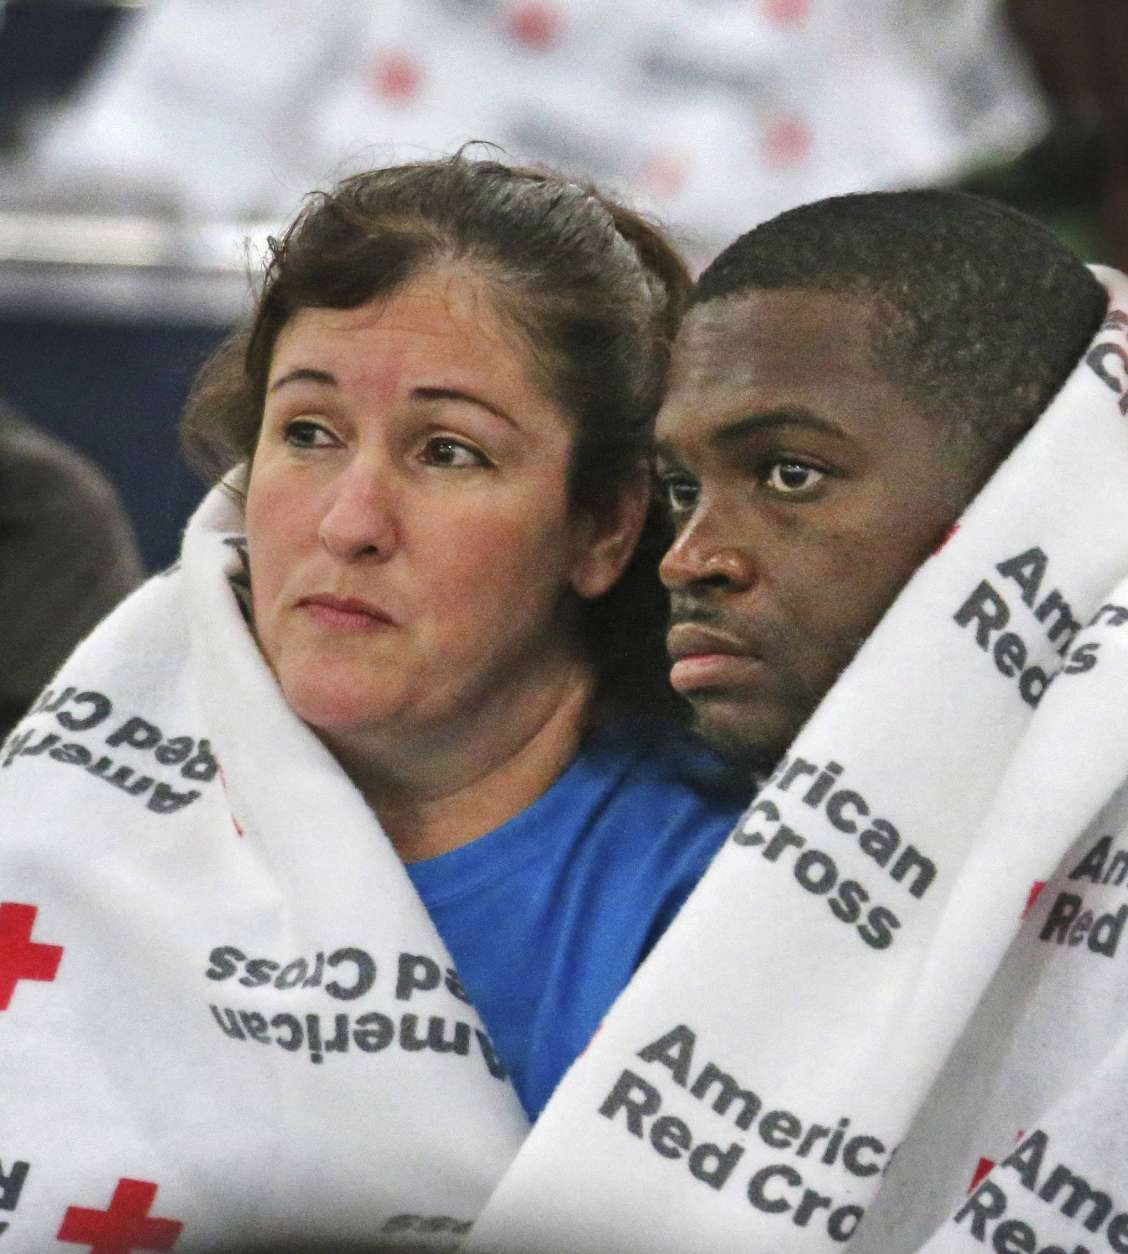 Displaced South Houston residents Oralia Guerra and Diamond Robinson huddle together to stay warm underneath Red Cross blankets at the George Brown Convention Center in Houston on Monday, Aug. 28, 2017, in the wake of Tropical Storm Harvey. Floodwaters reached the rooflines of single-story homes Monday and people could be heard pleading for help from inside as Harvey poured rain on the Houston area for a fourth consecutive day after a chaotic weekend of rising water and rescues. (Louis DeLuca/The Dallas Morning News via AP)